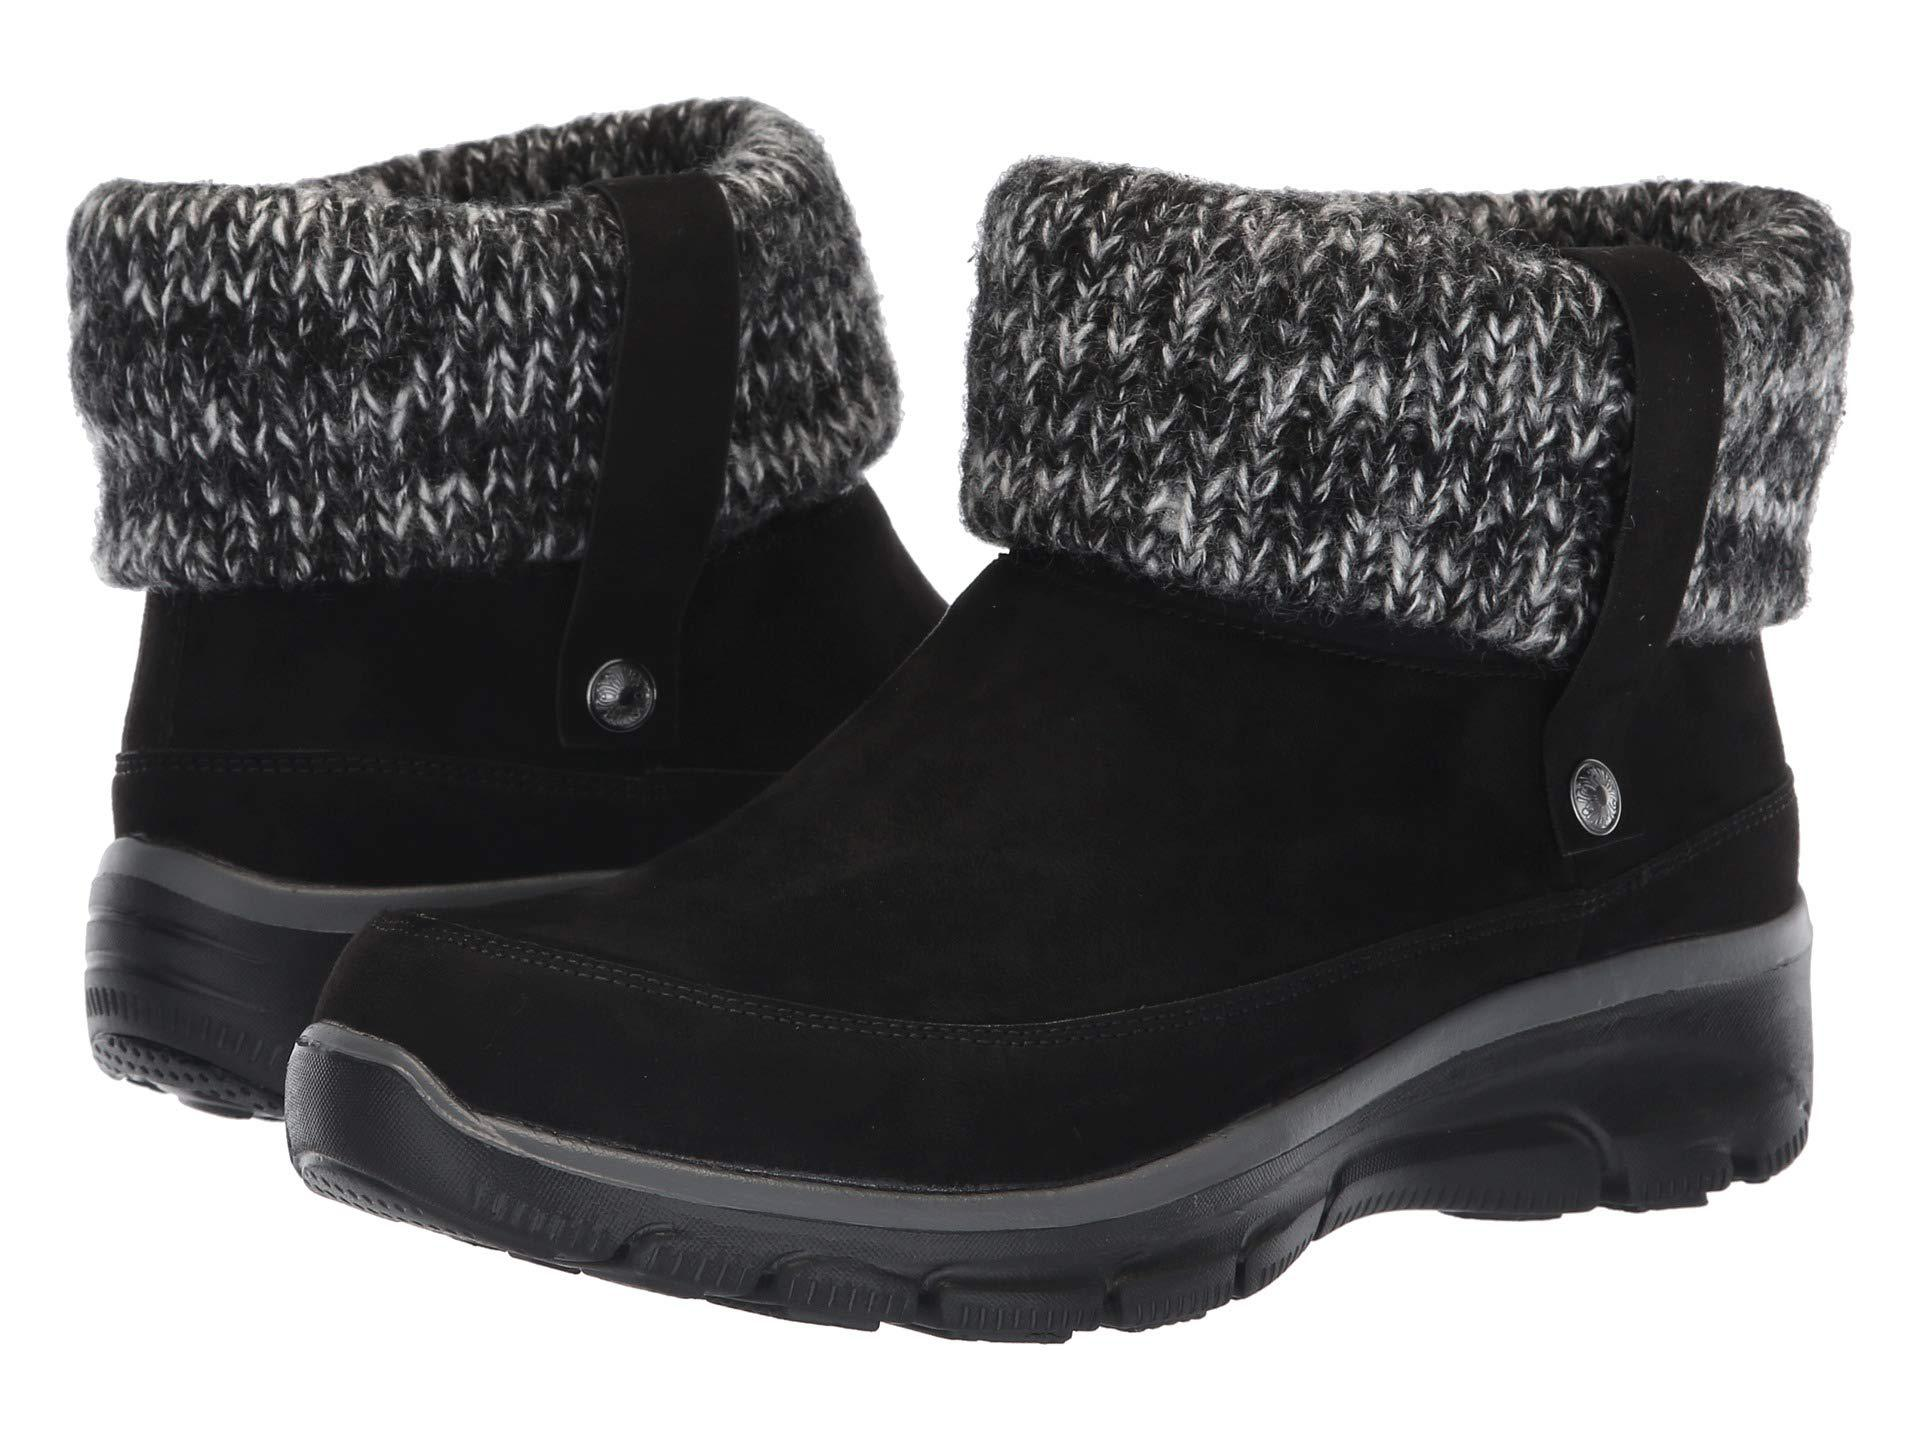 f91acb110729 Lyst - Skechers Easy Going-heighten-foldover Knit Collar Boot Ankle ...